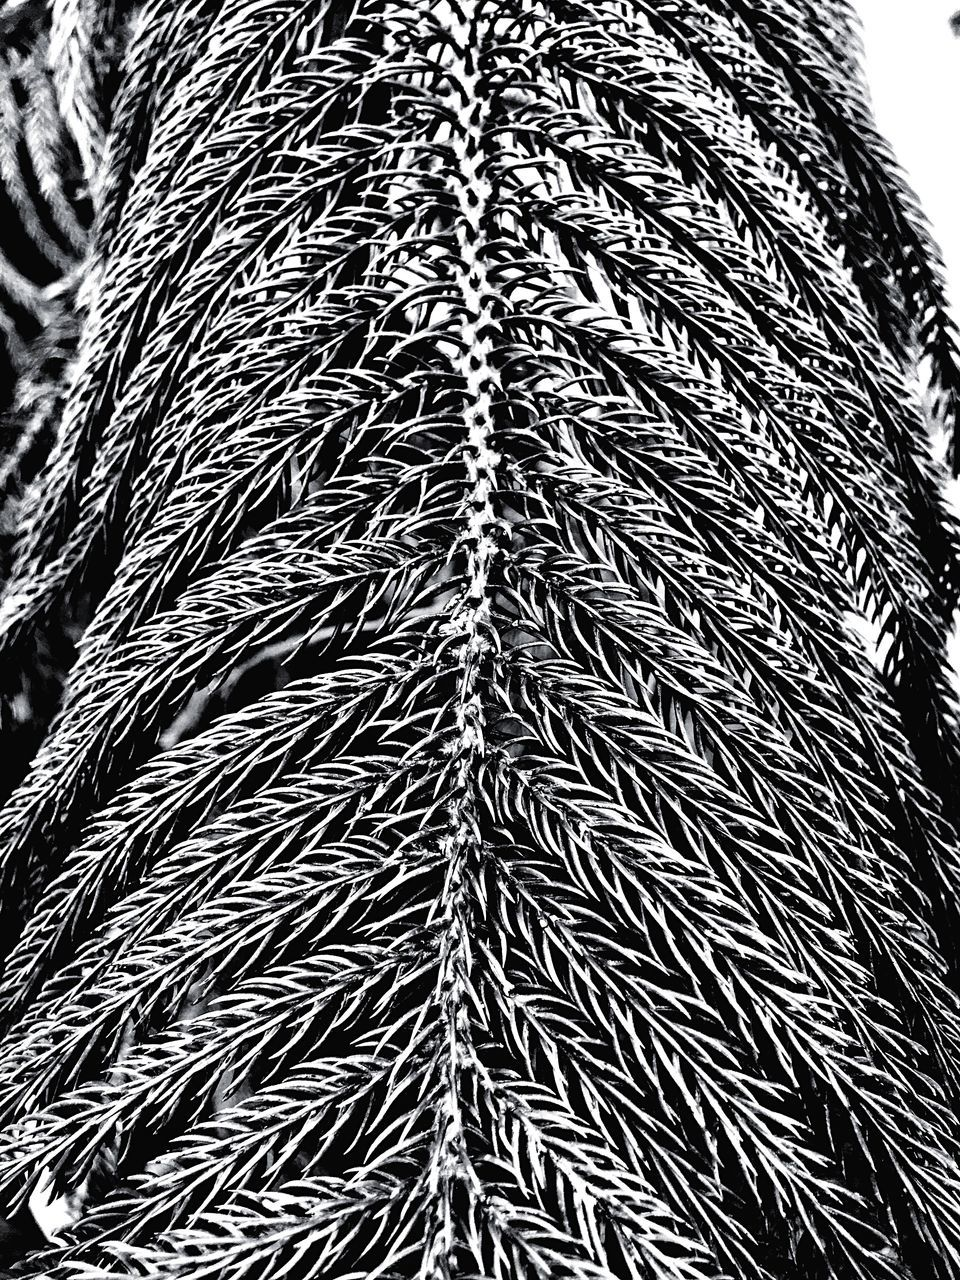 pattern, full frame, backgrounds, no people, close-up, textured, indoors, day, wool